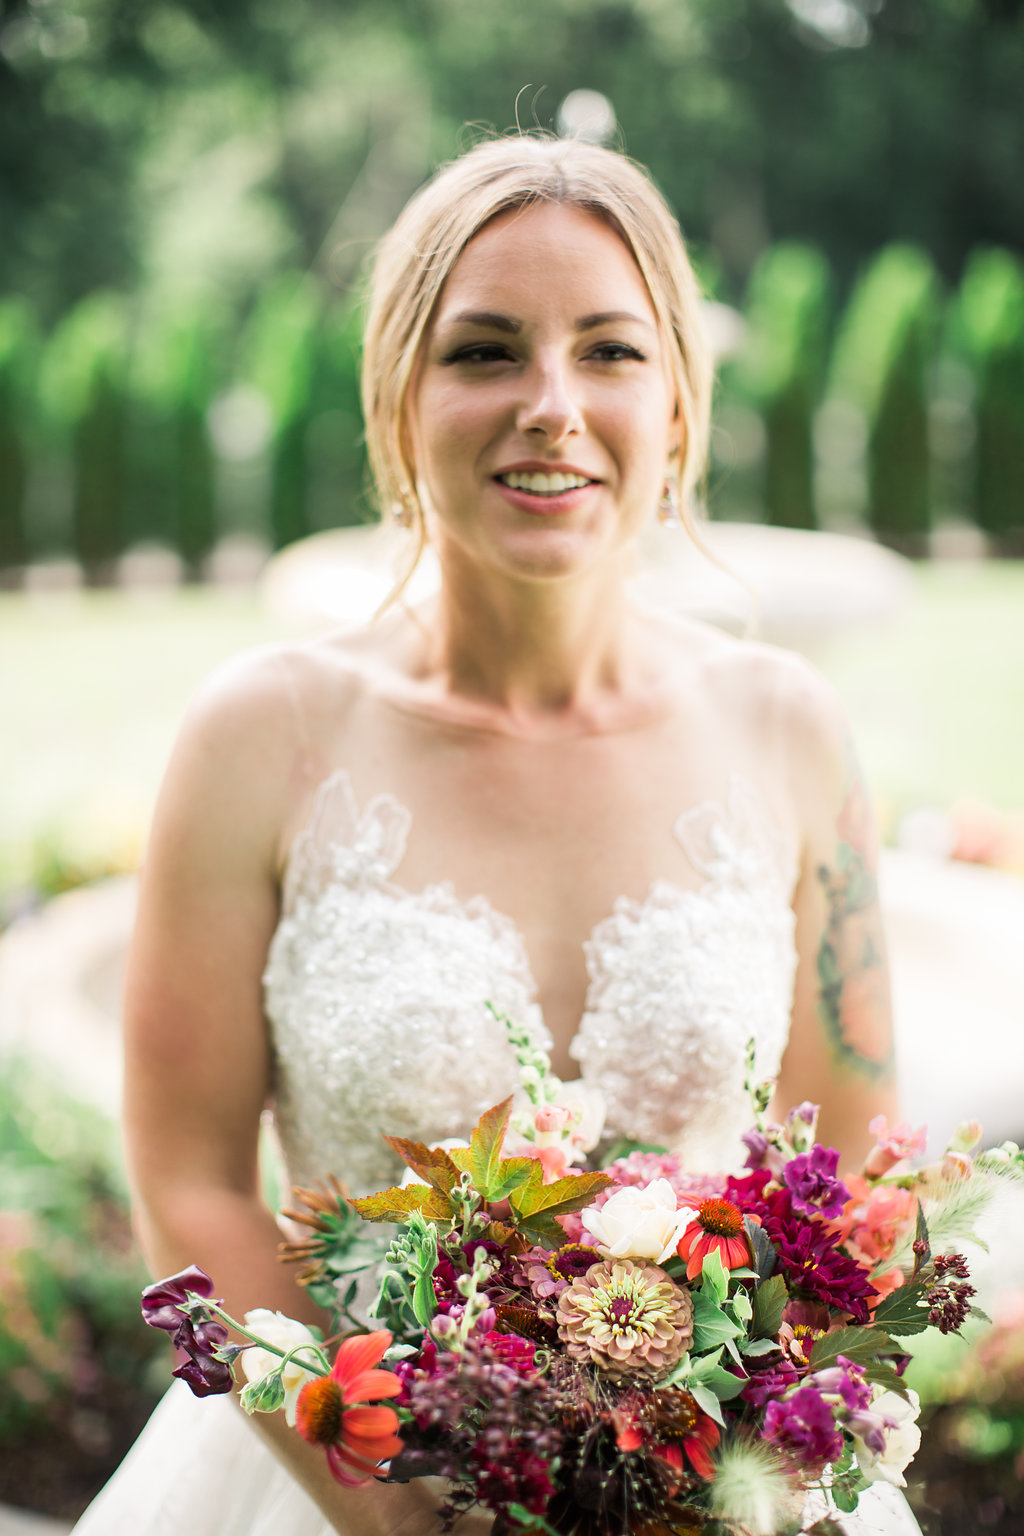 Gorgeous bride Angie is also the assistant flower farmer here at Eddy Farm. Photo by RC Zajac Photography.